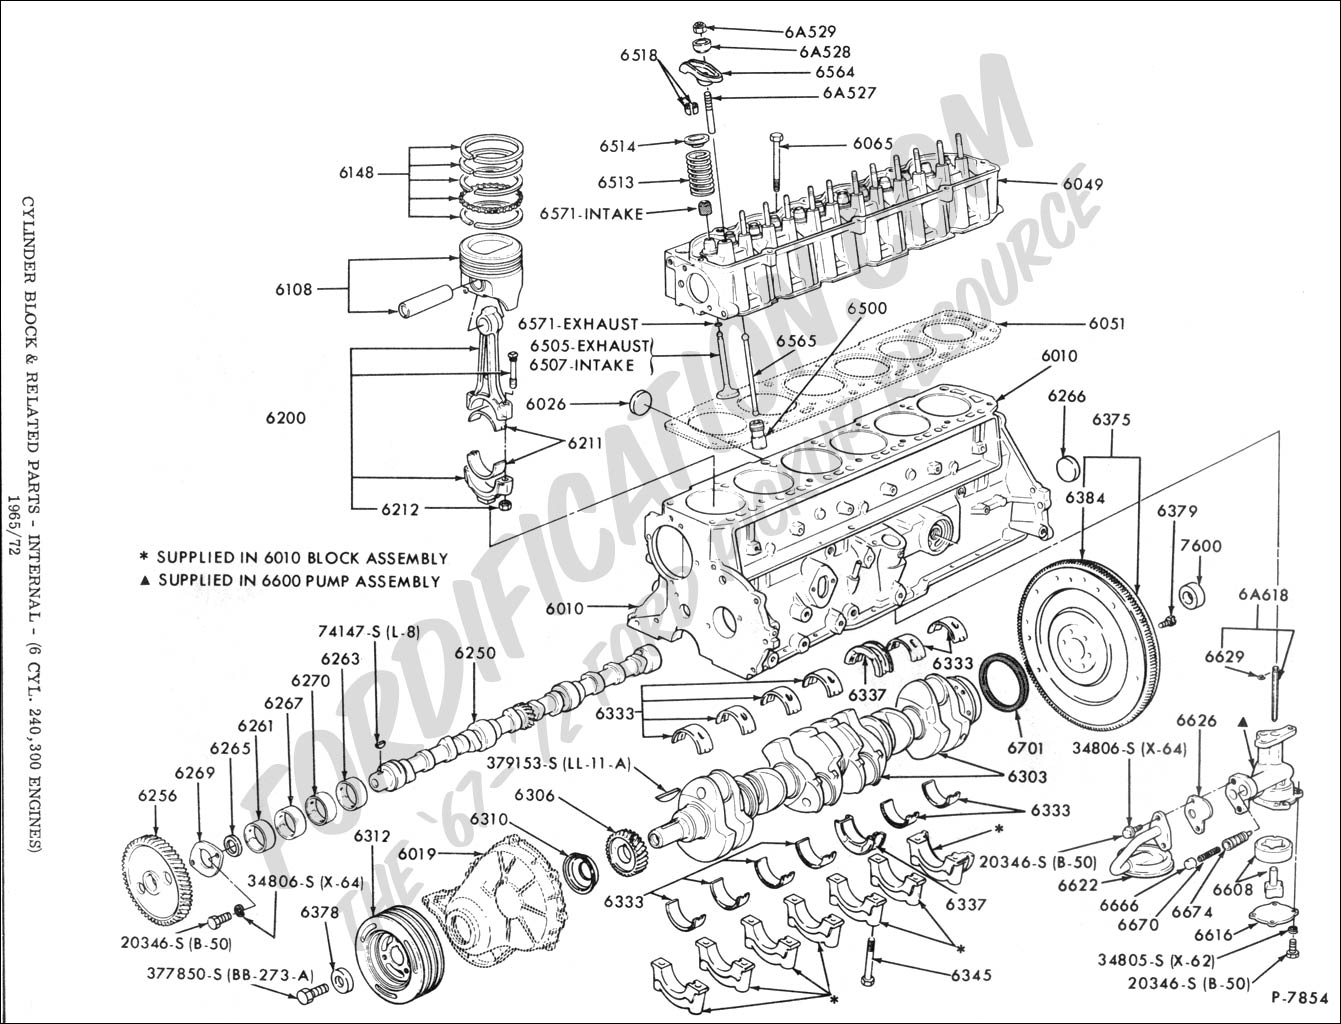 1966 Mustang 289 Wiring Diagram, 1966, Free Engine Image